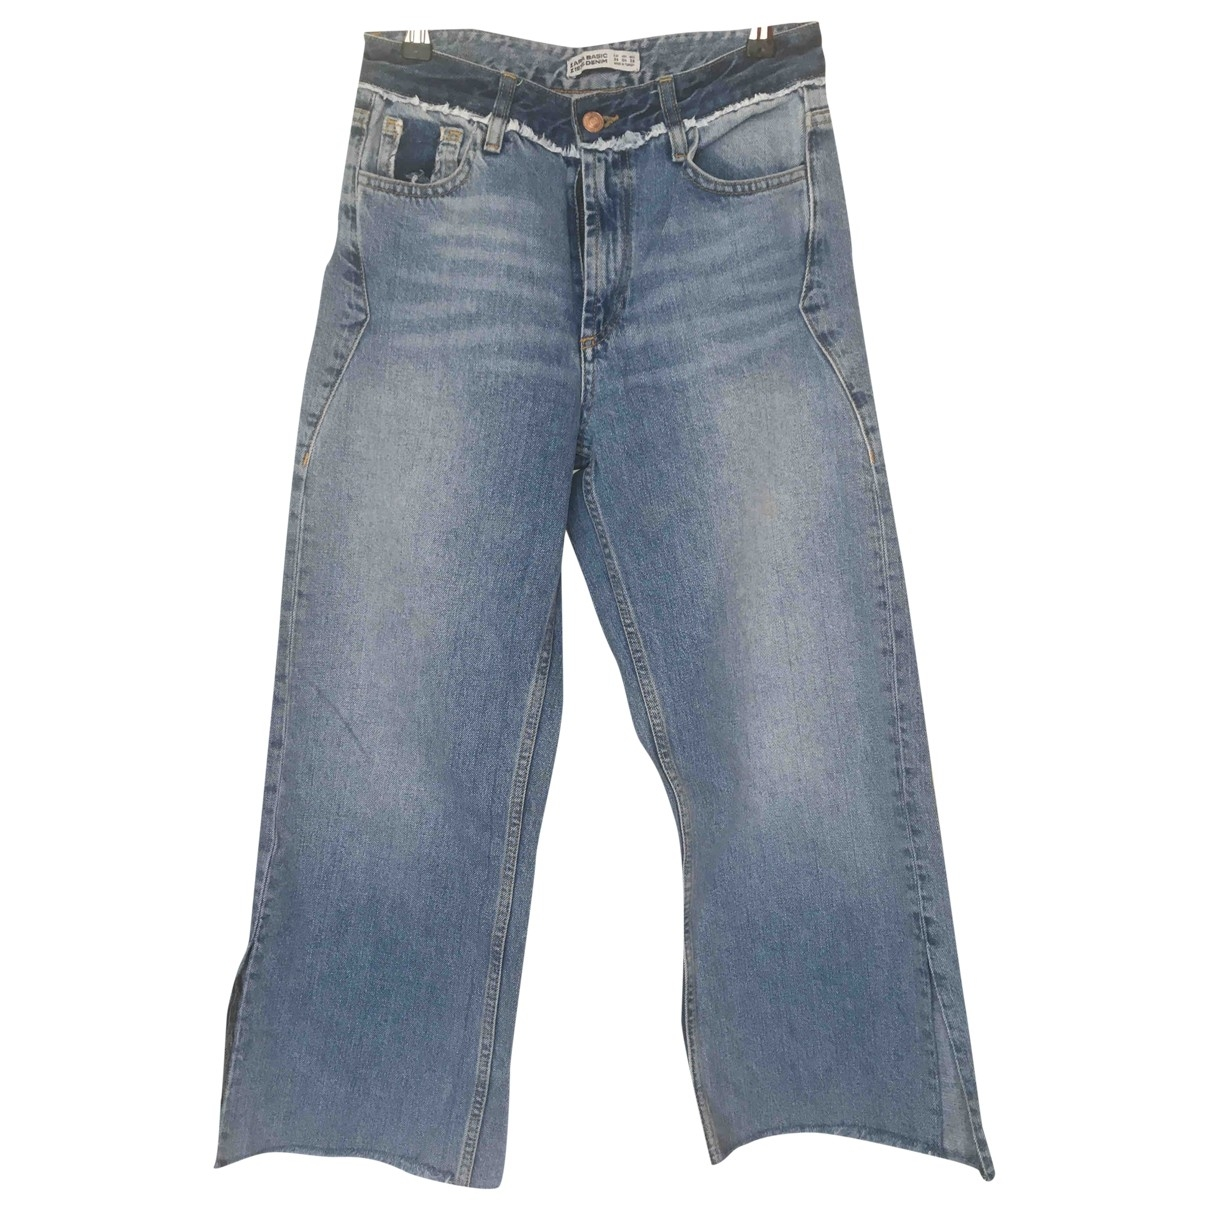 Zara \N Blue Denim - Jeans Jeans for Women 36 FR